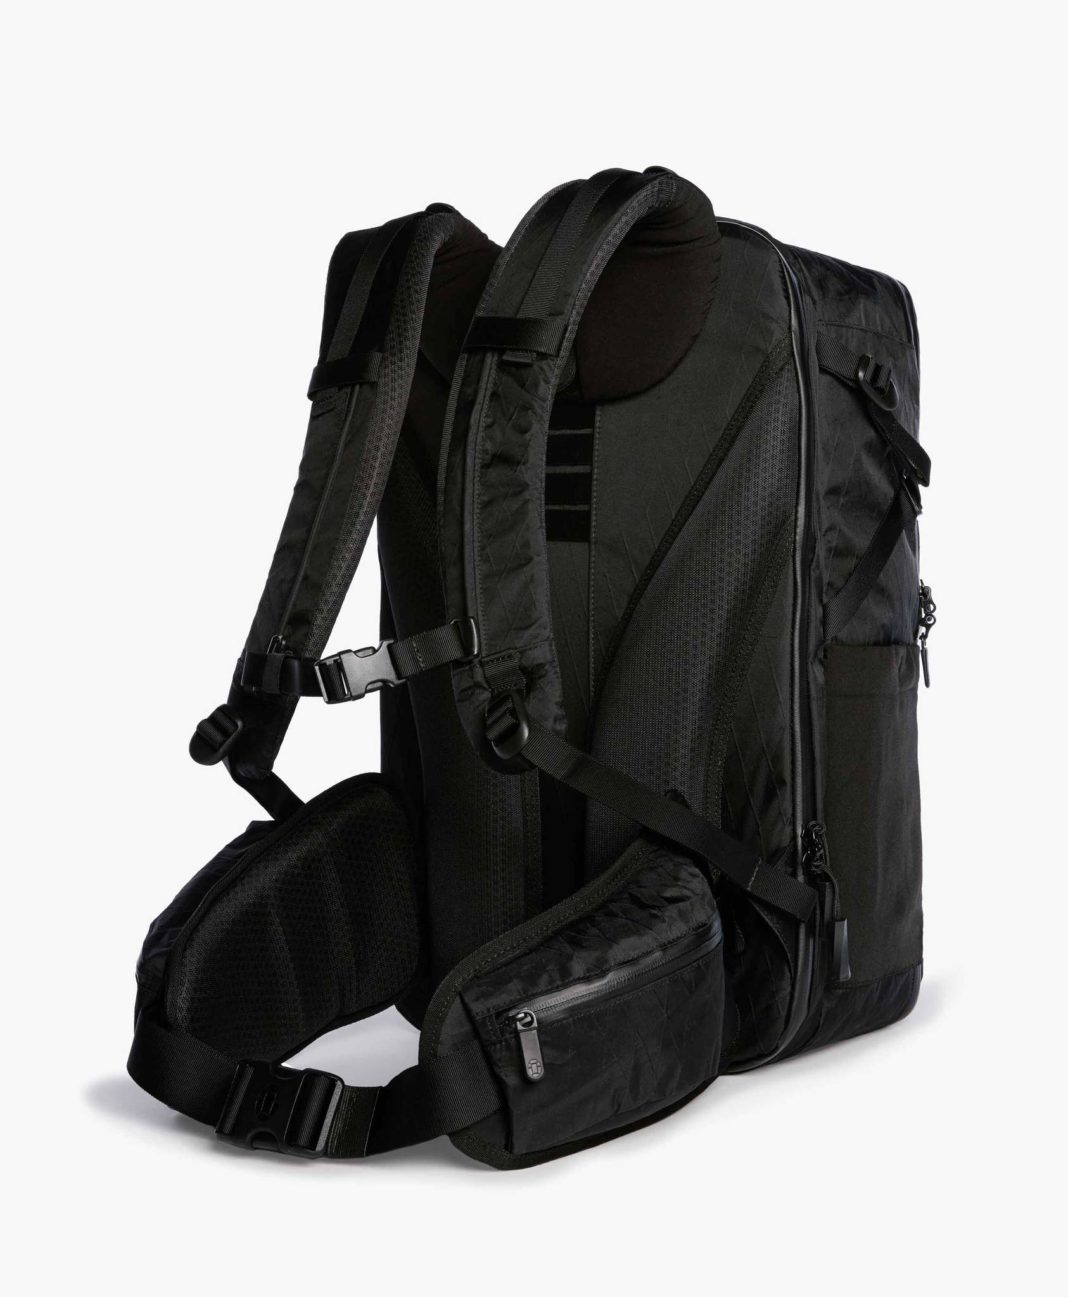 9d5e6810b855 Tortuga Travel Backpack  For Every Urban Traveler - trekbible